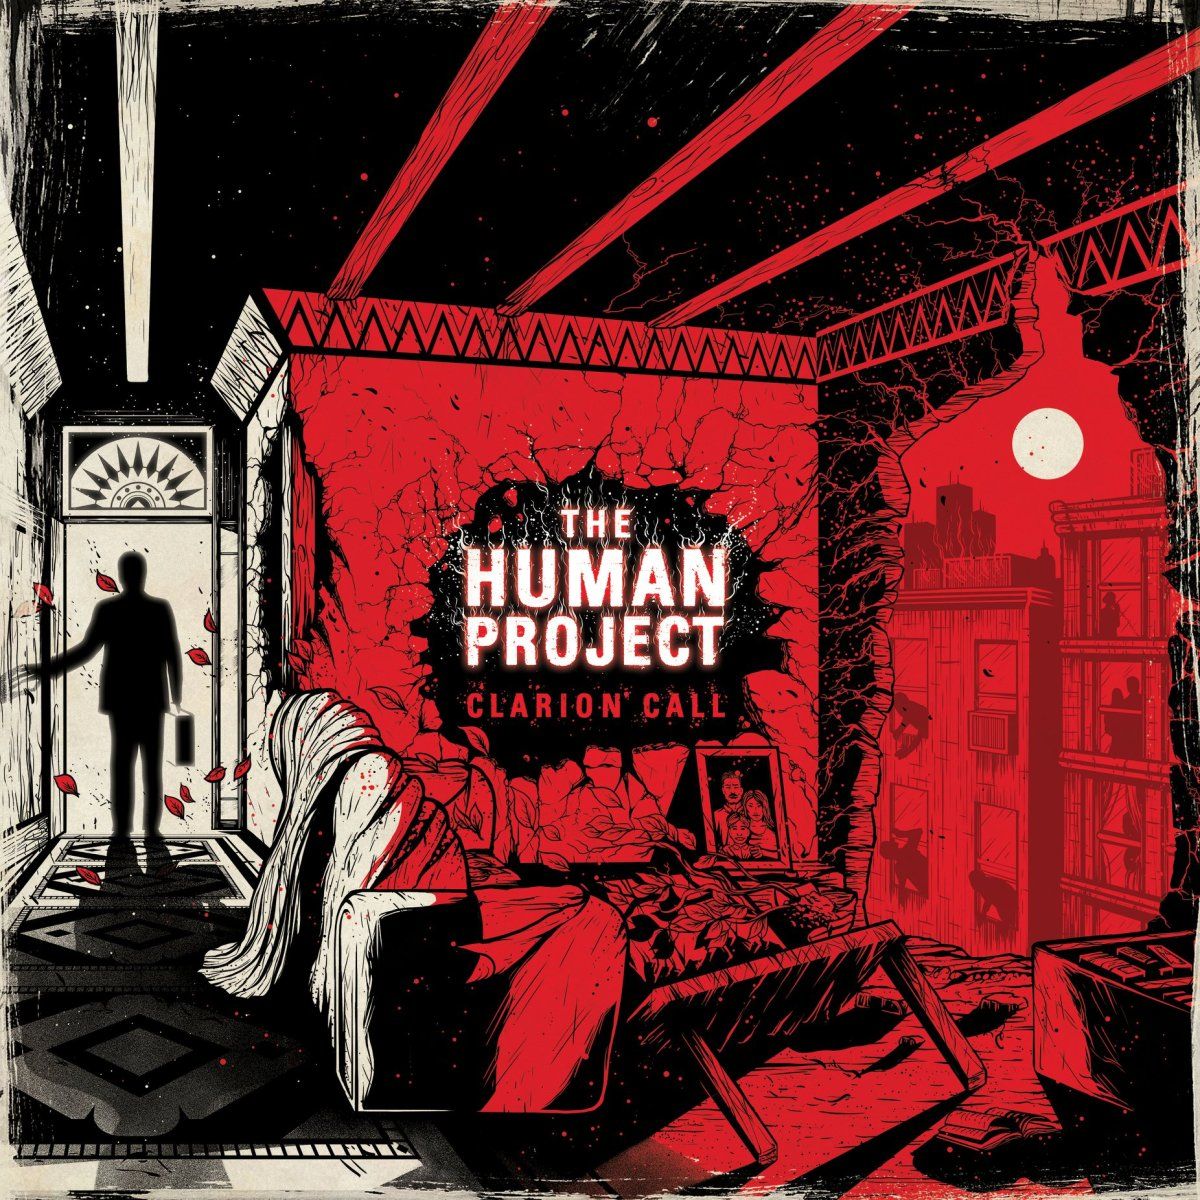 Album Review: The Human Project - Clarion Call